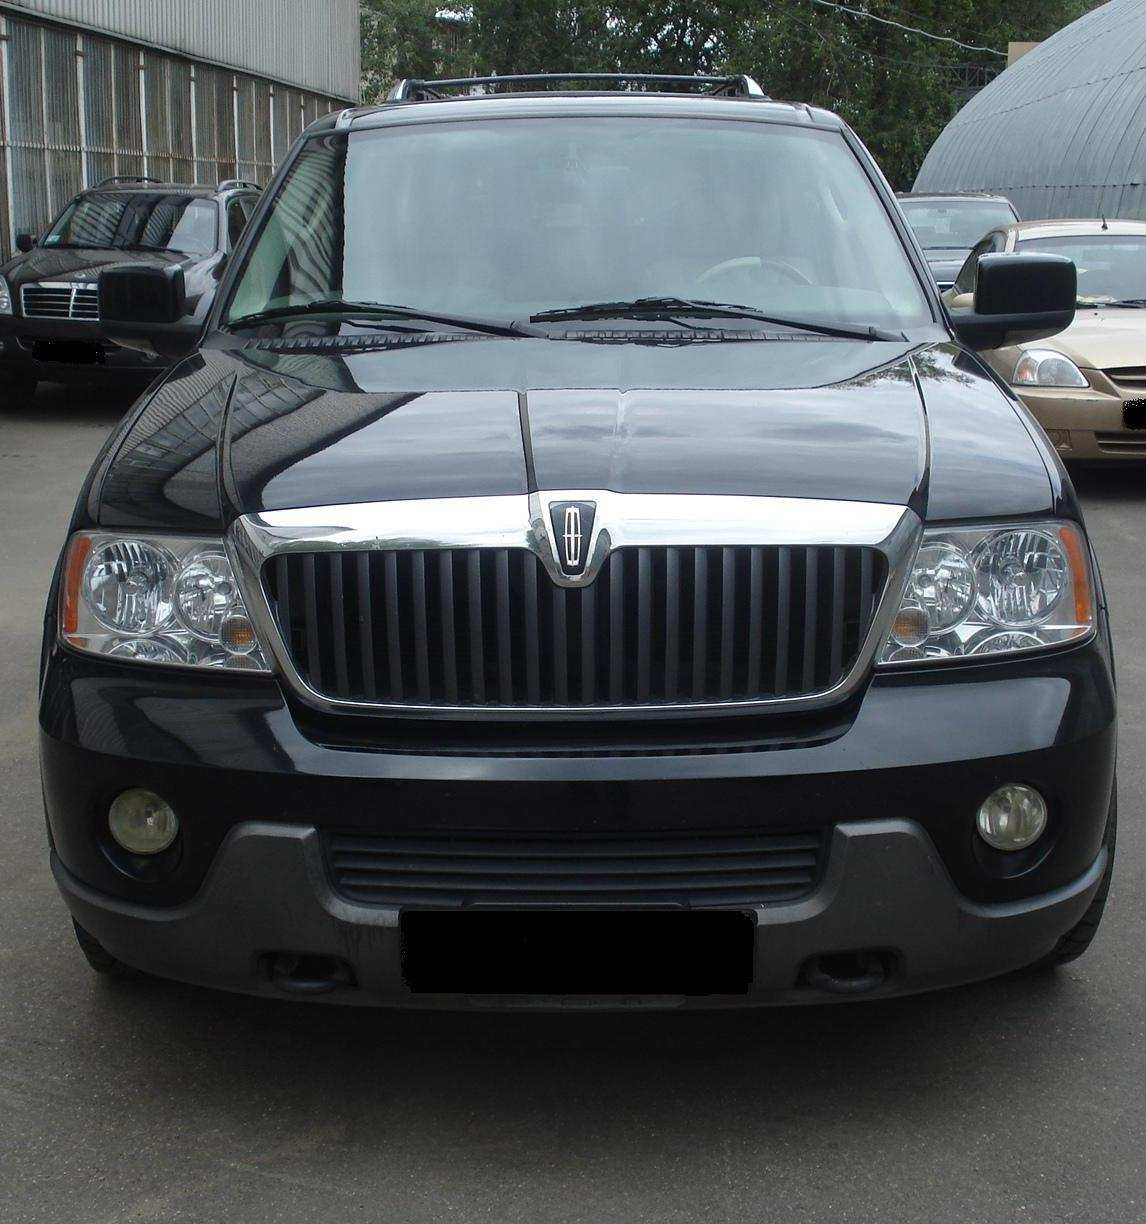 2004 lincoln navigator pictures gasoline automatic for sale. Black Bedroom Furniture Sets. Home Design Ideas